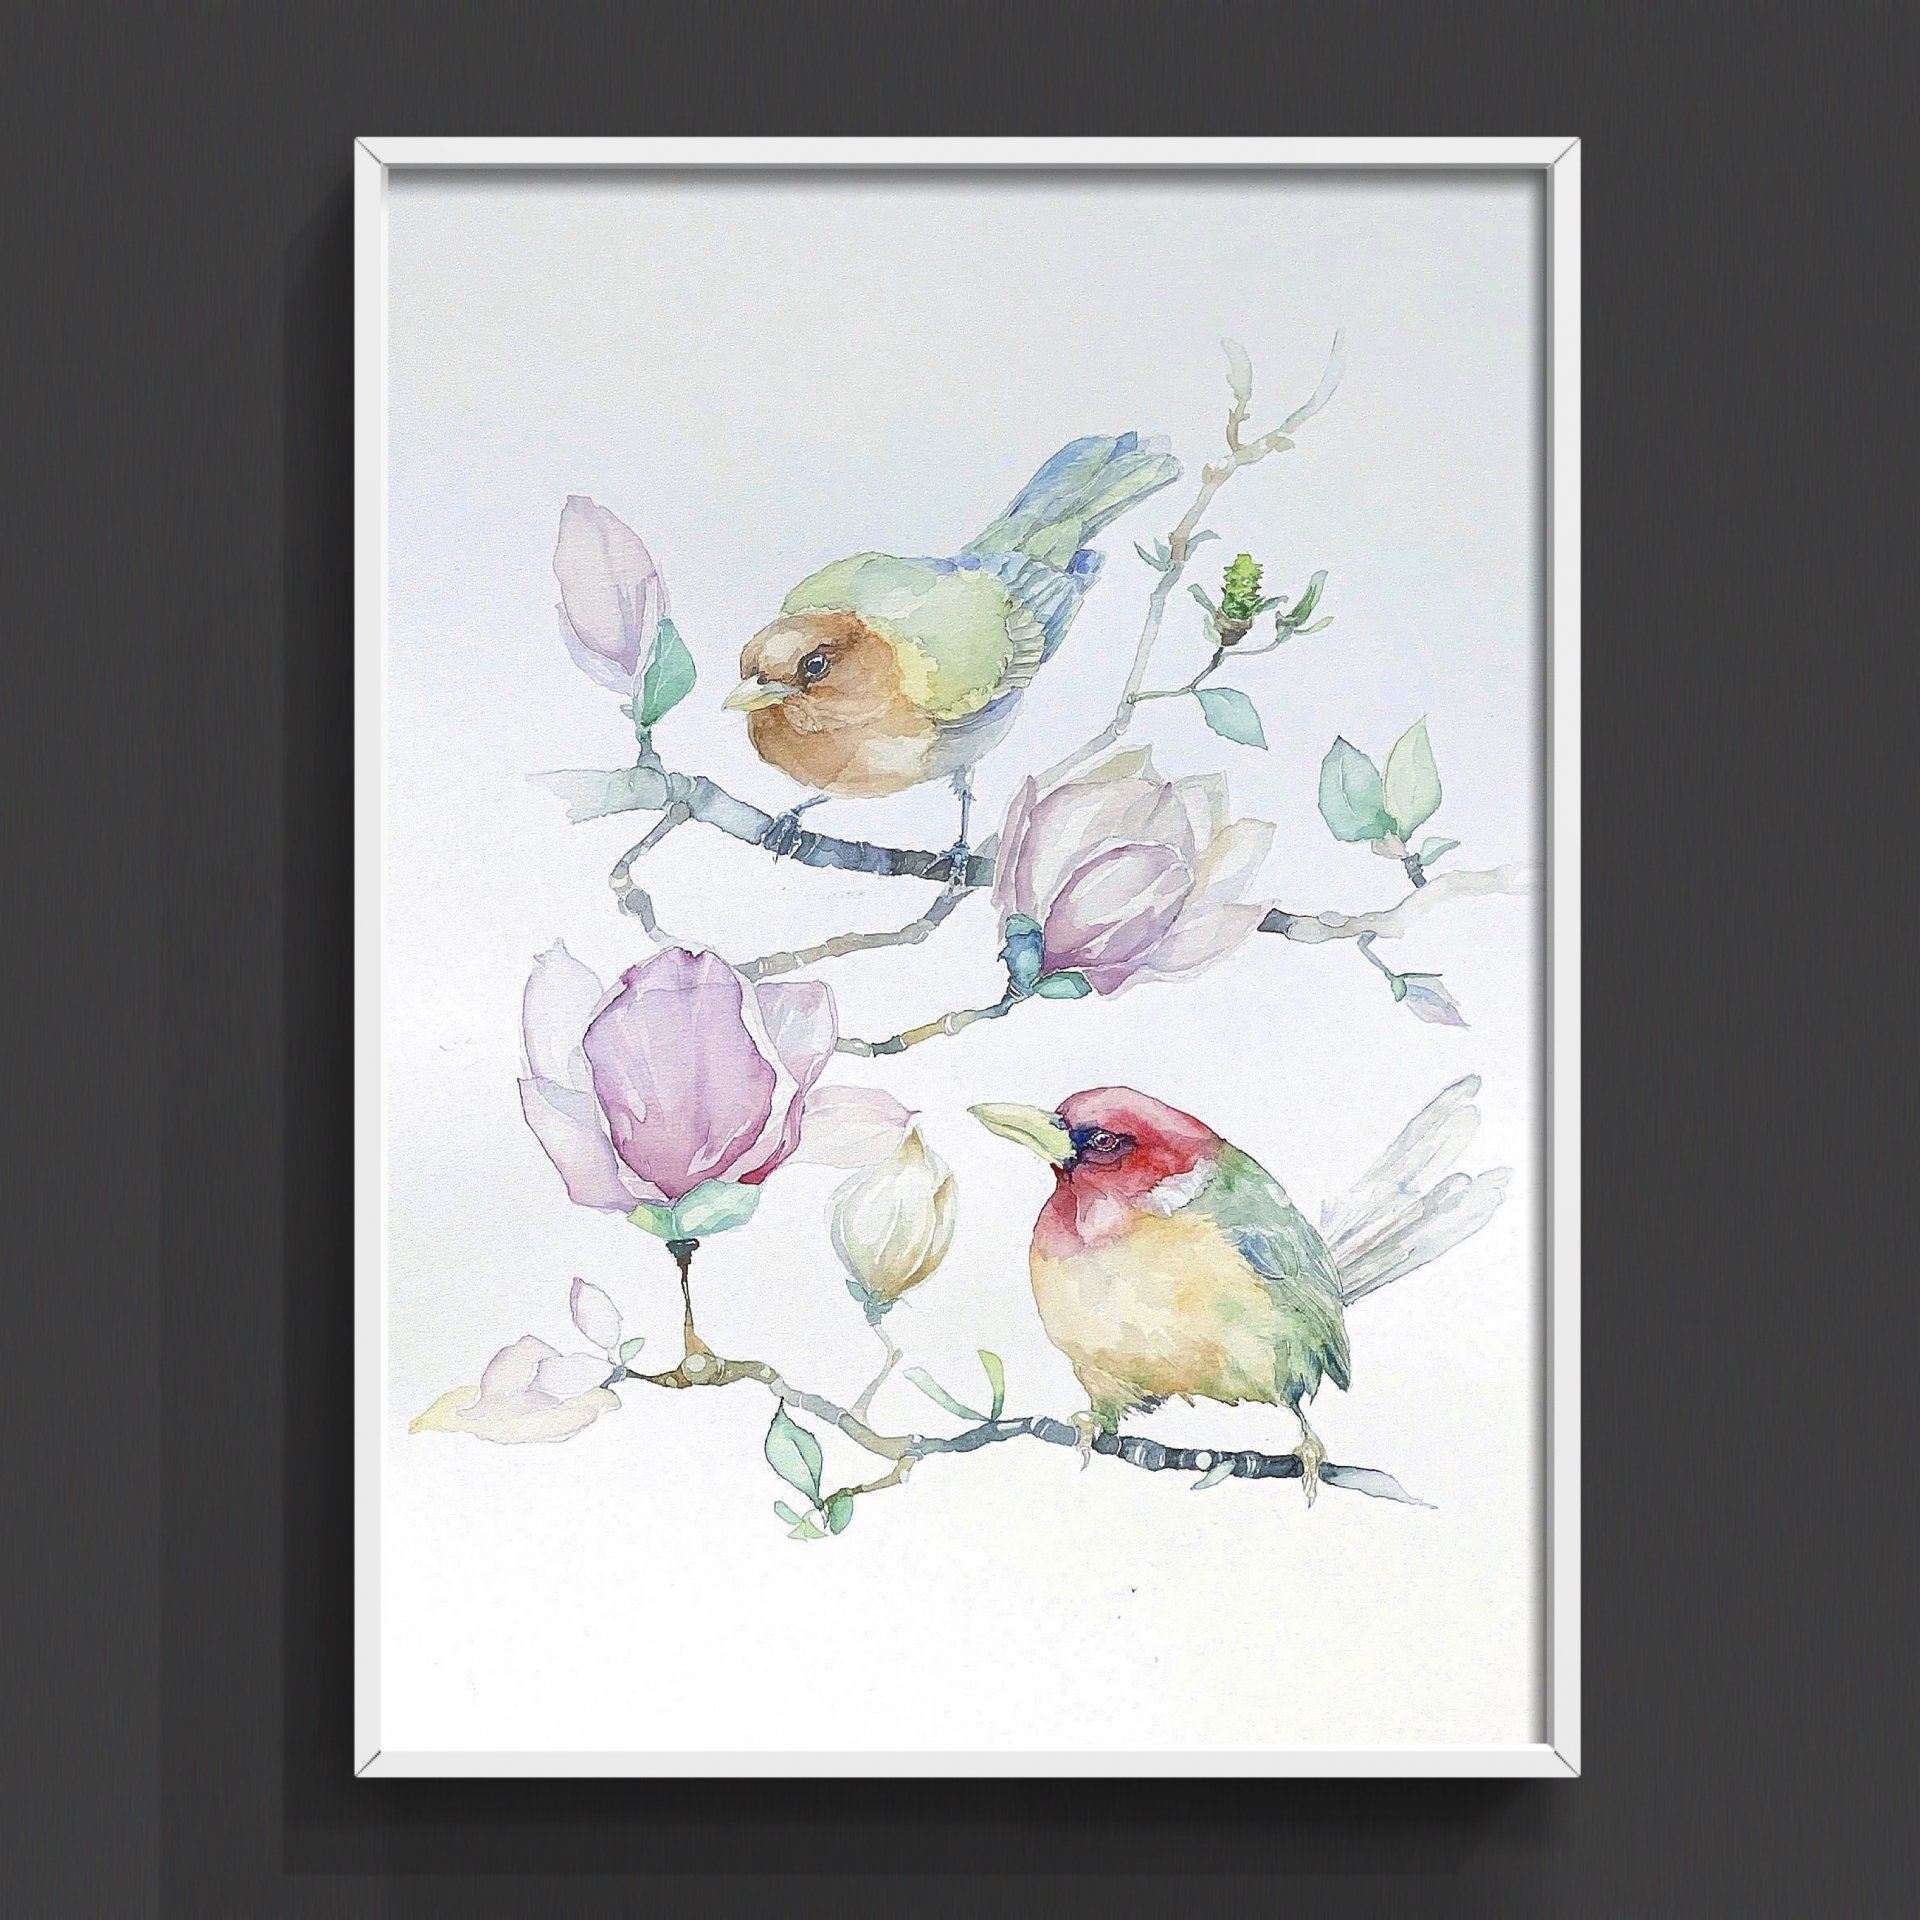 Birds and Flowers of Magnolia. Author Watercolor.